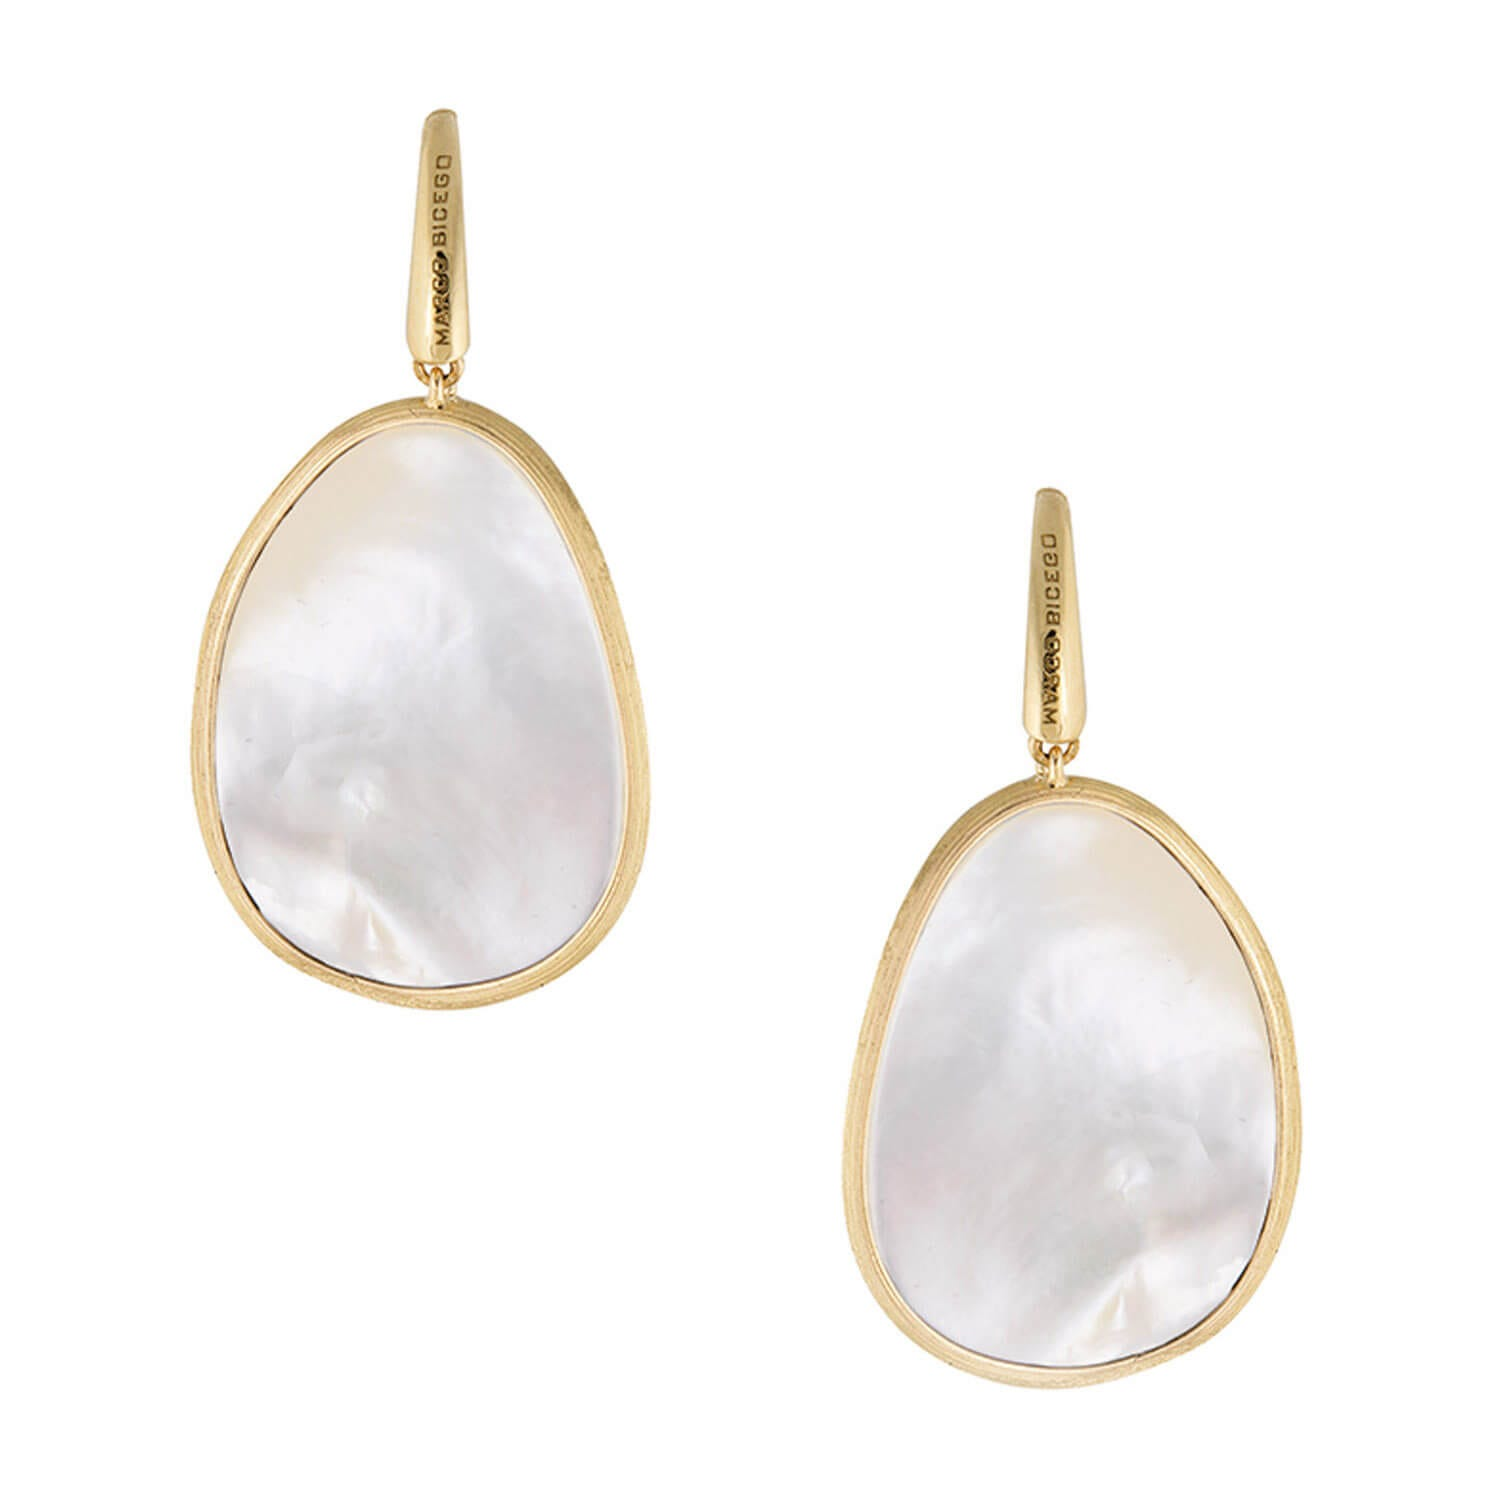 Marco Bicego Lunaria 18ct Yellow Gold with White Mother of Pearl Drop Earrings